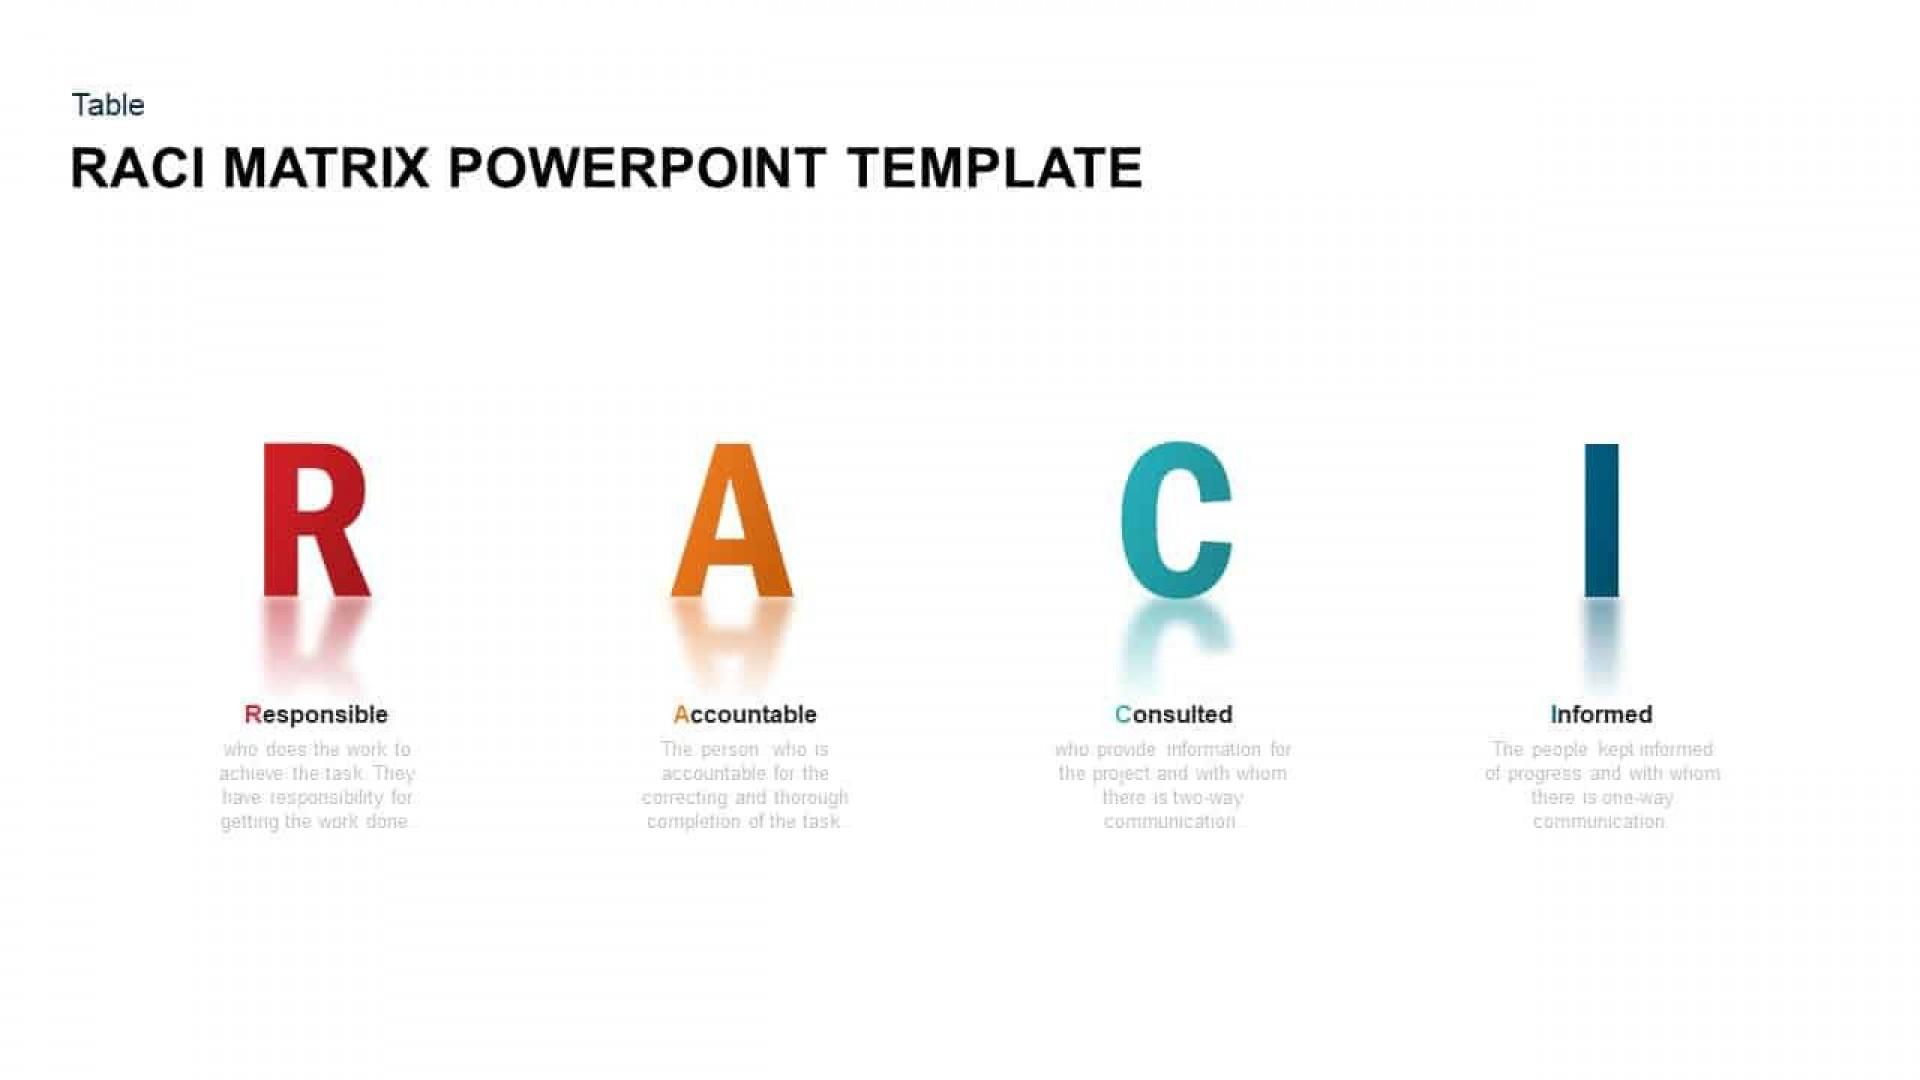 006 Top Role And Responsibilitie Matrix Template Powerpoint Idea 1920